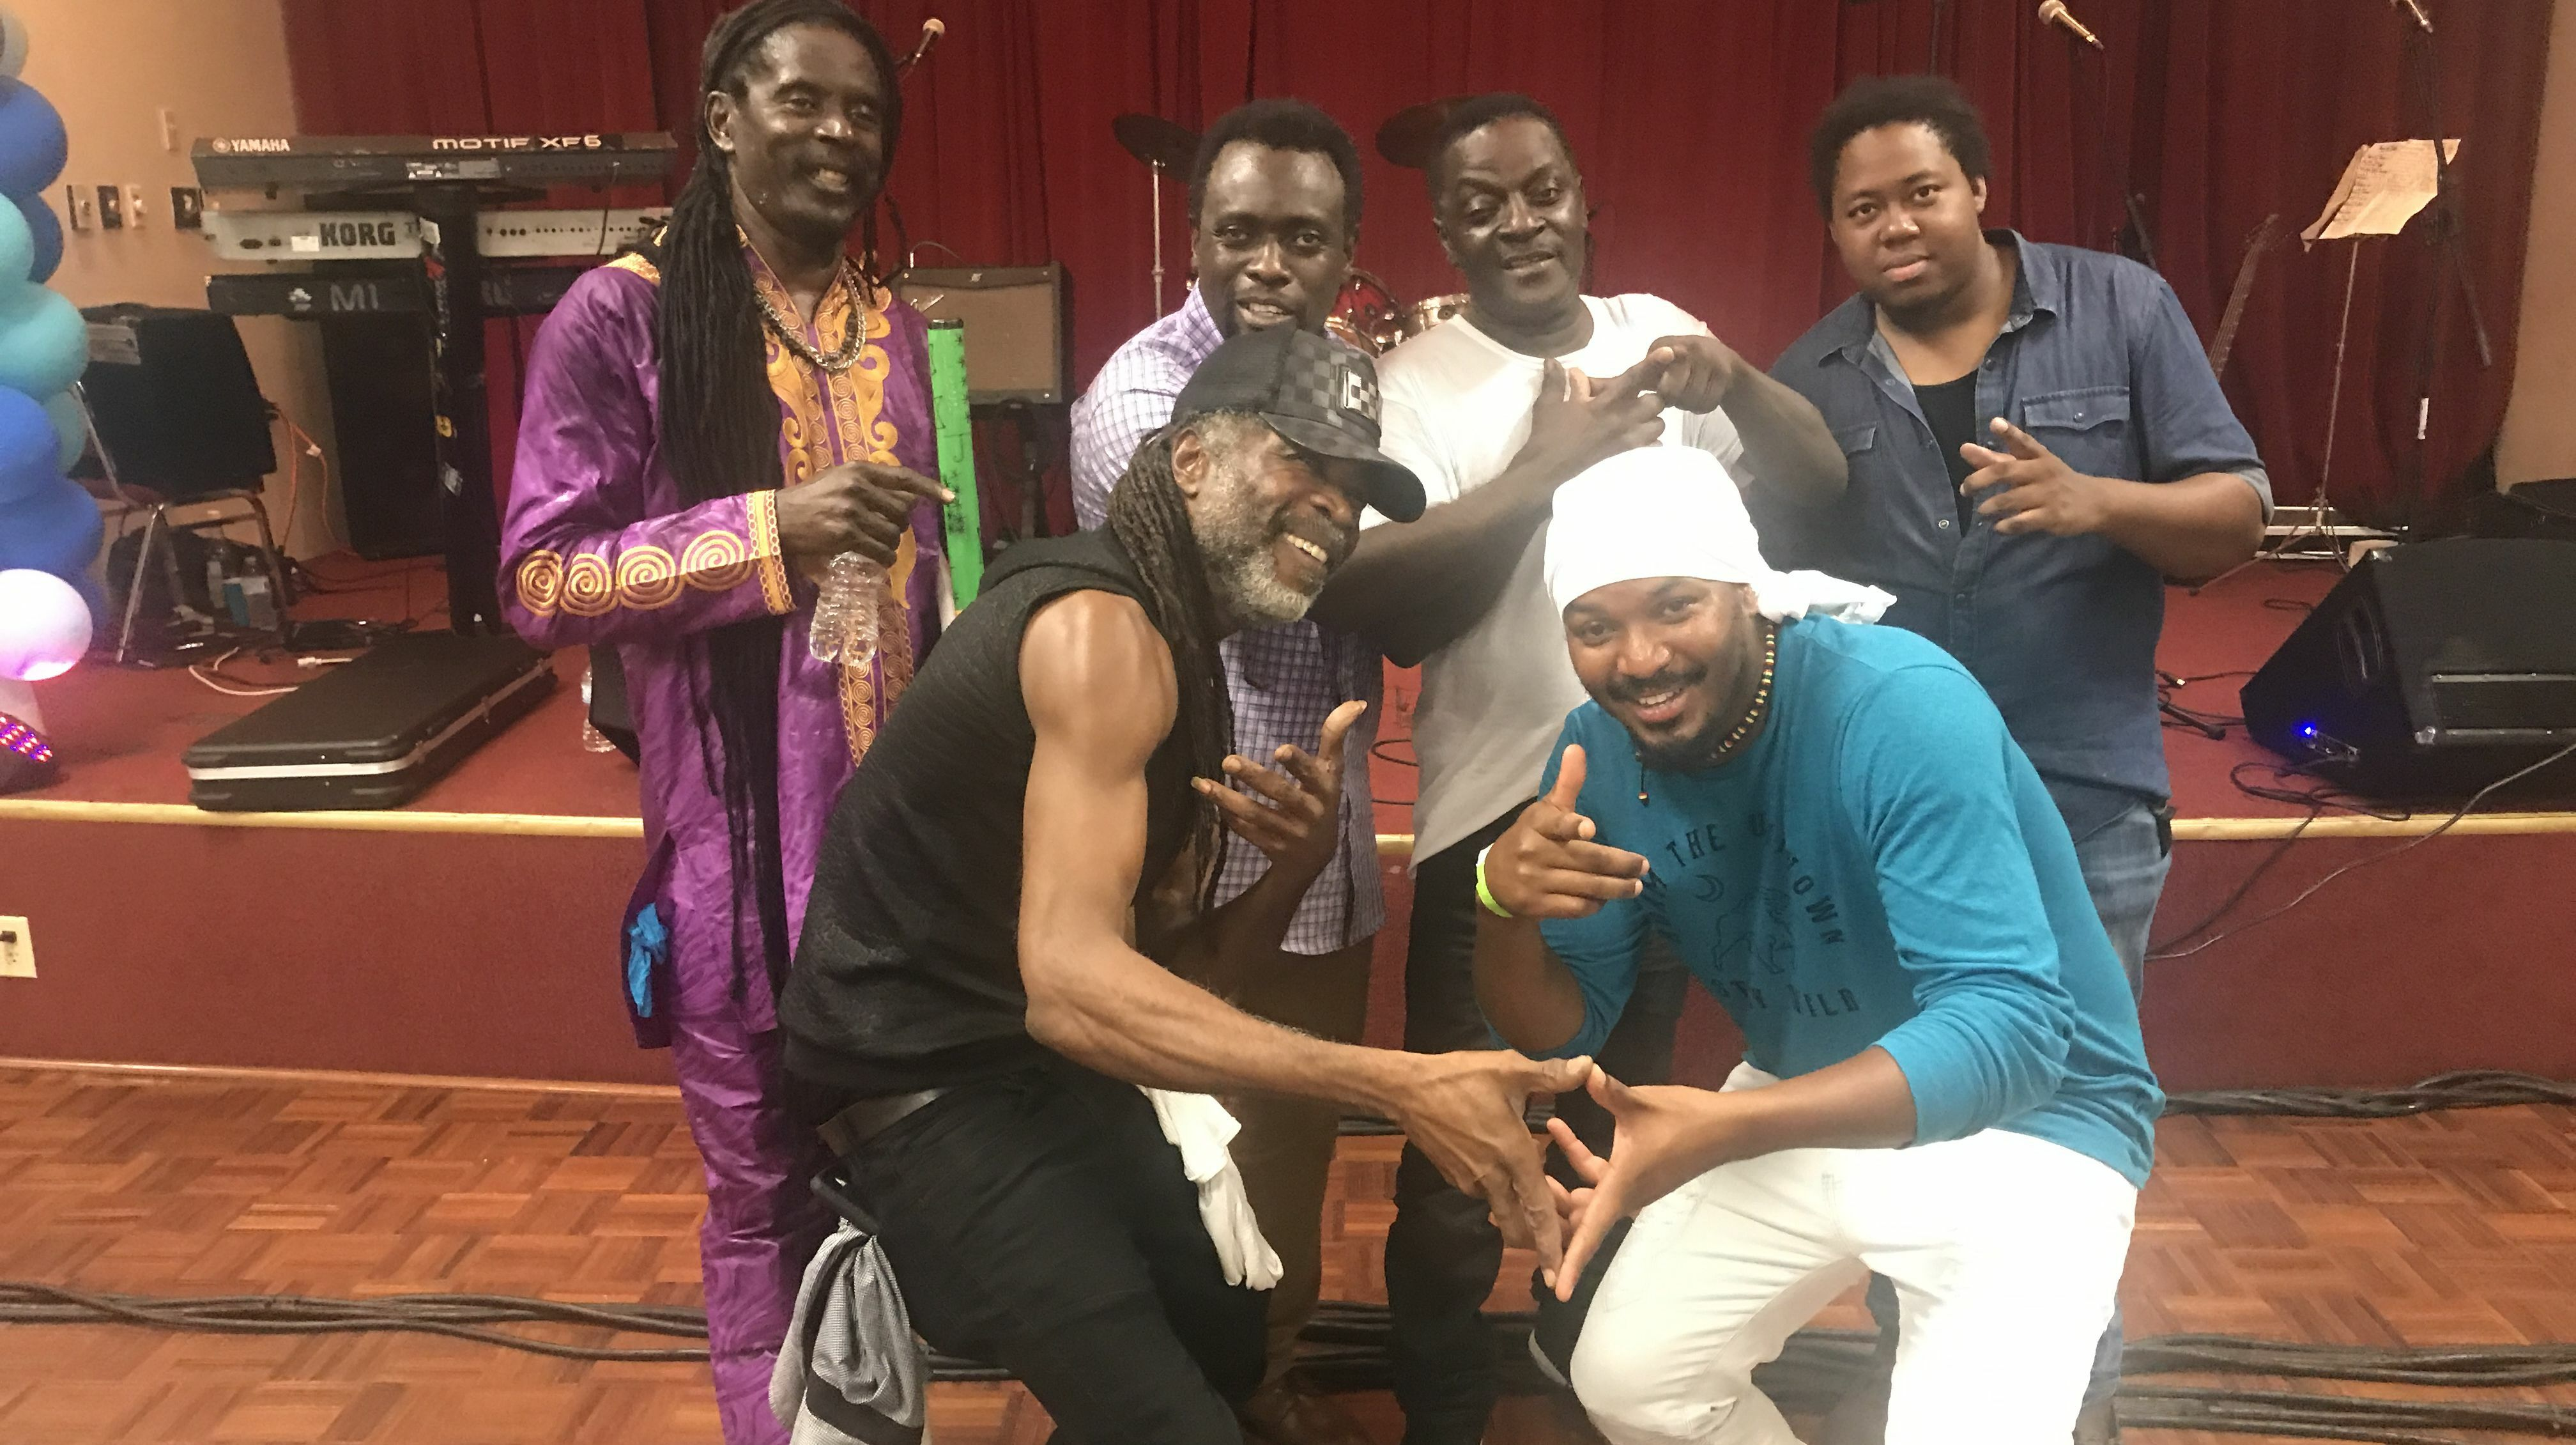 Ifrolix Reggae Band Performs With Classic Singers - YouTube Video